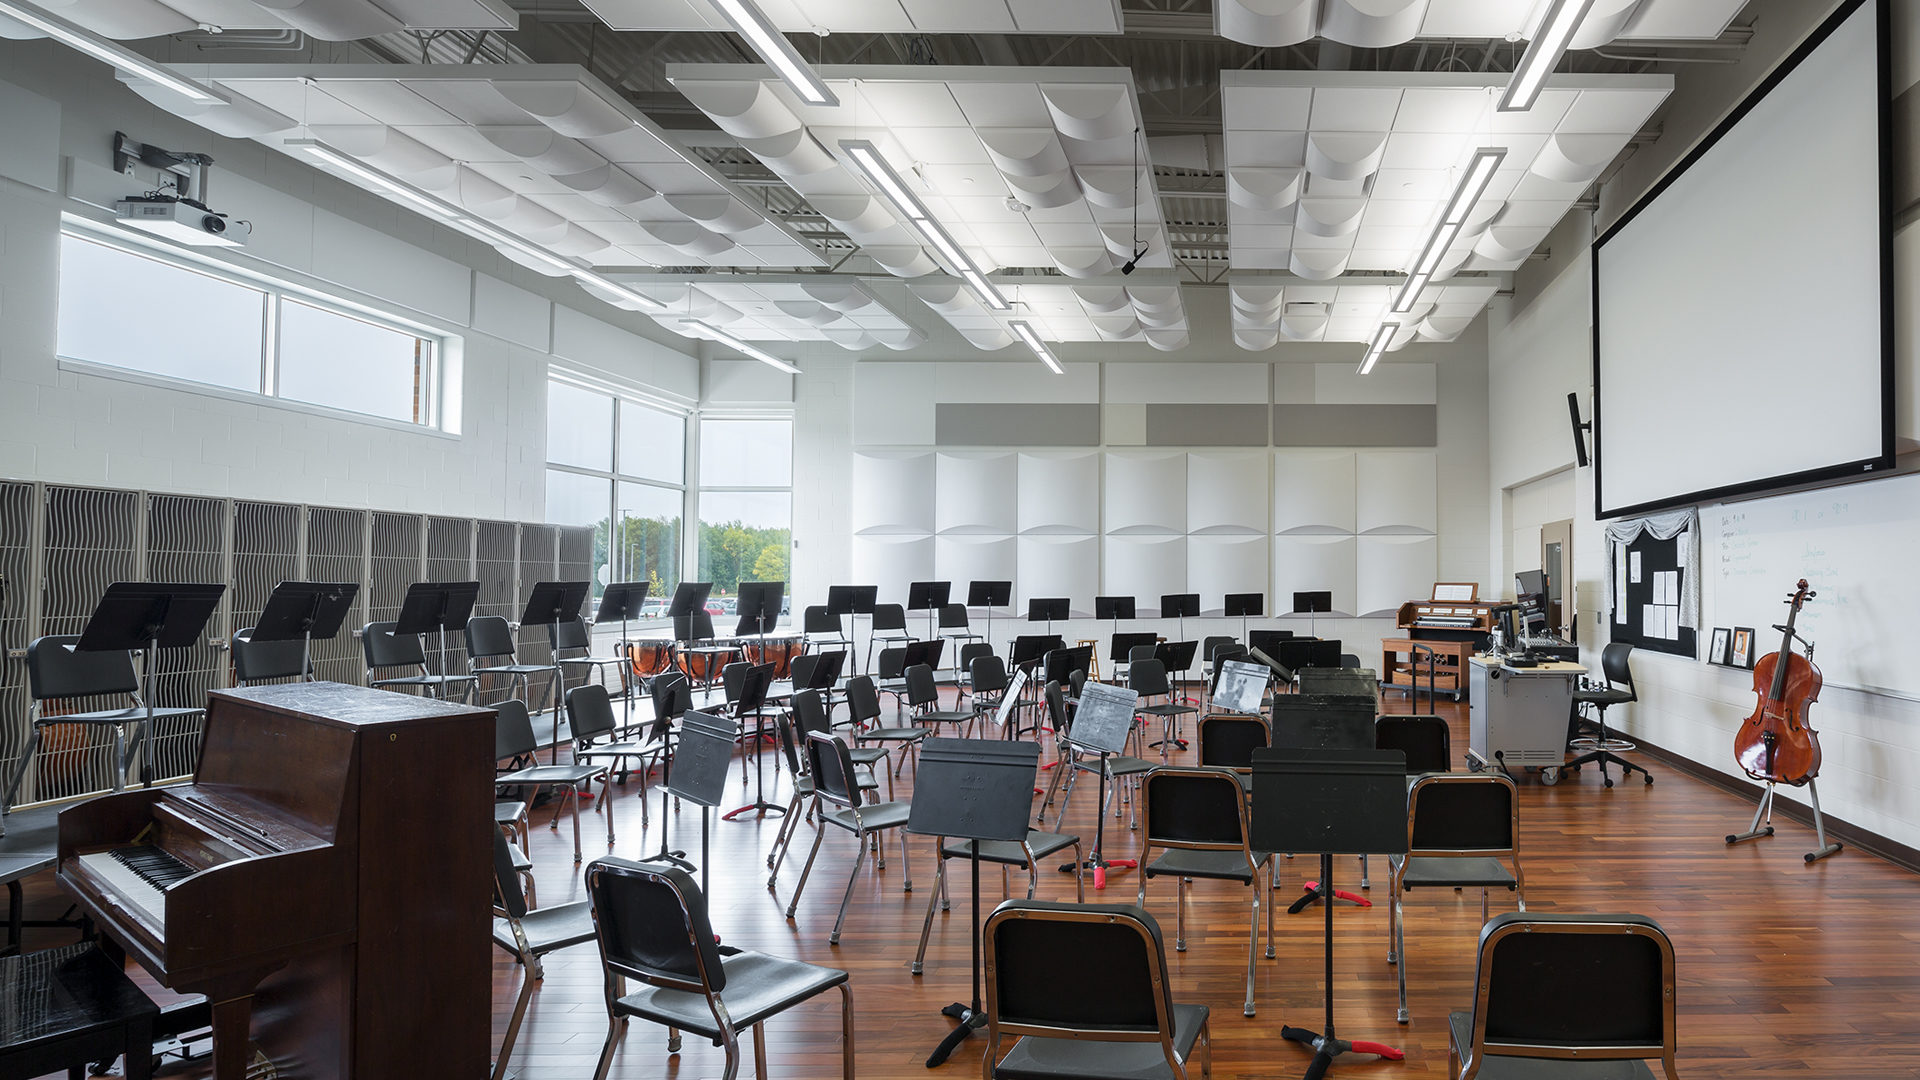 Alexandria High School Interior Music Room